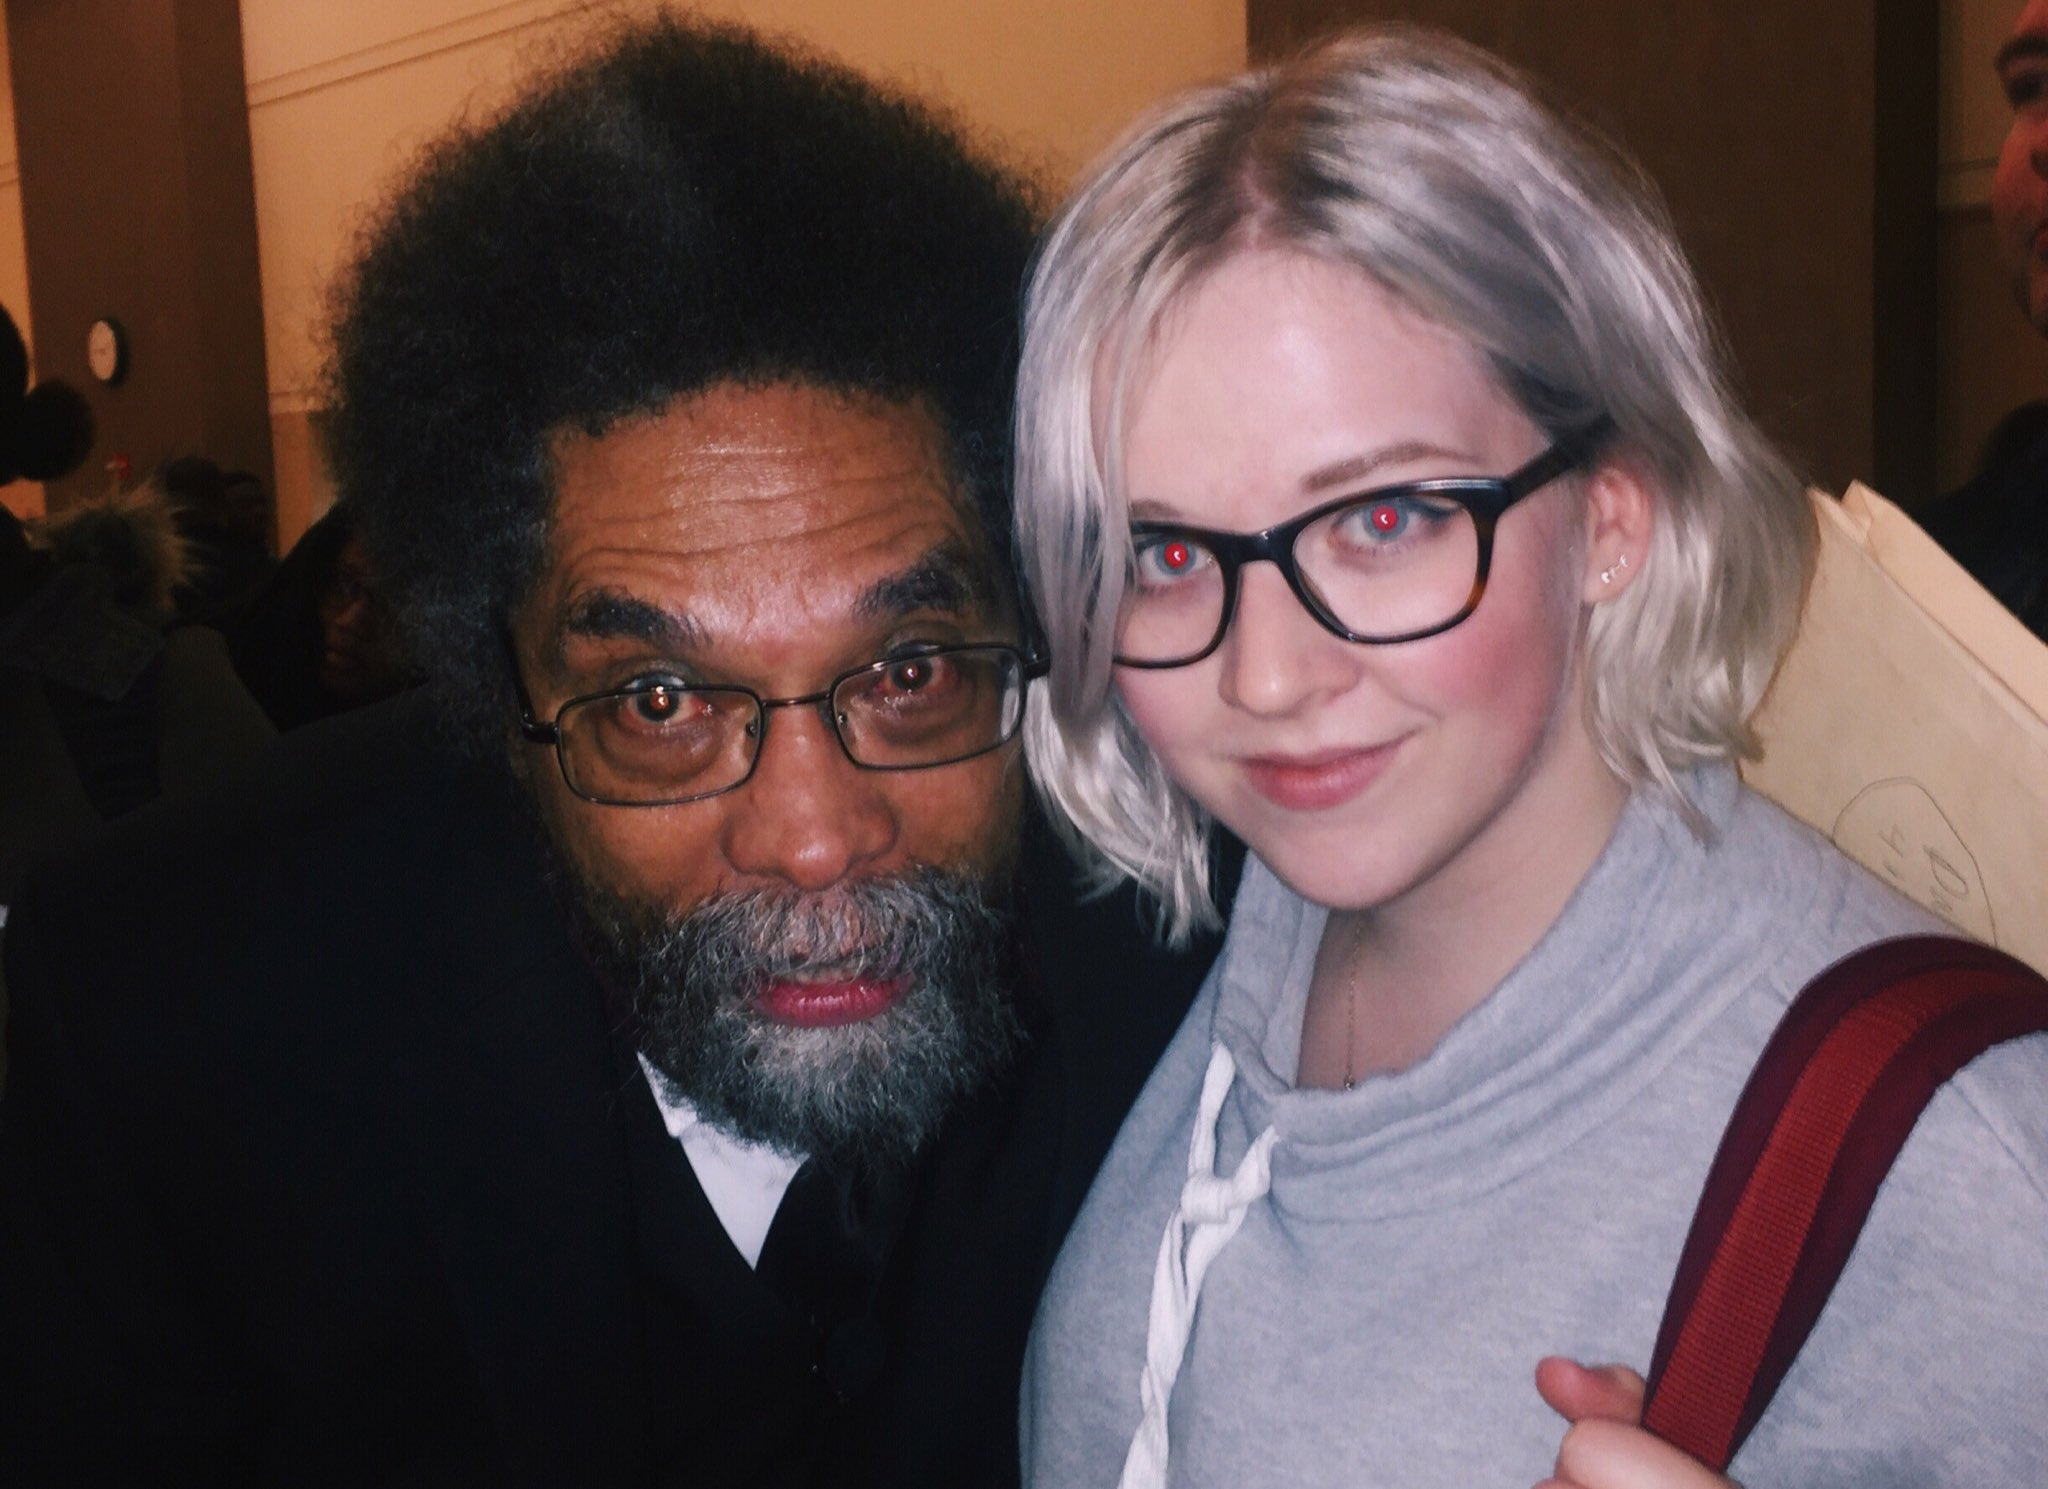 thank you, Dr. Cornel West, for teaching and sharing with us tonight https://t.co/3UkbcZyUbR